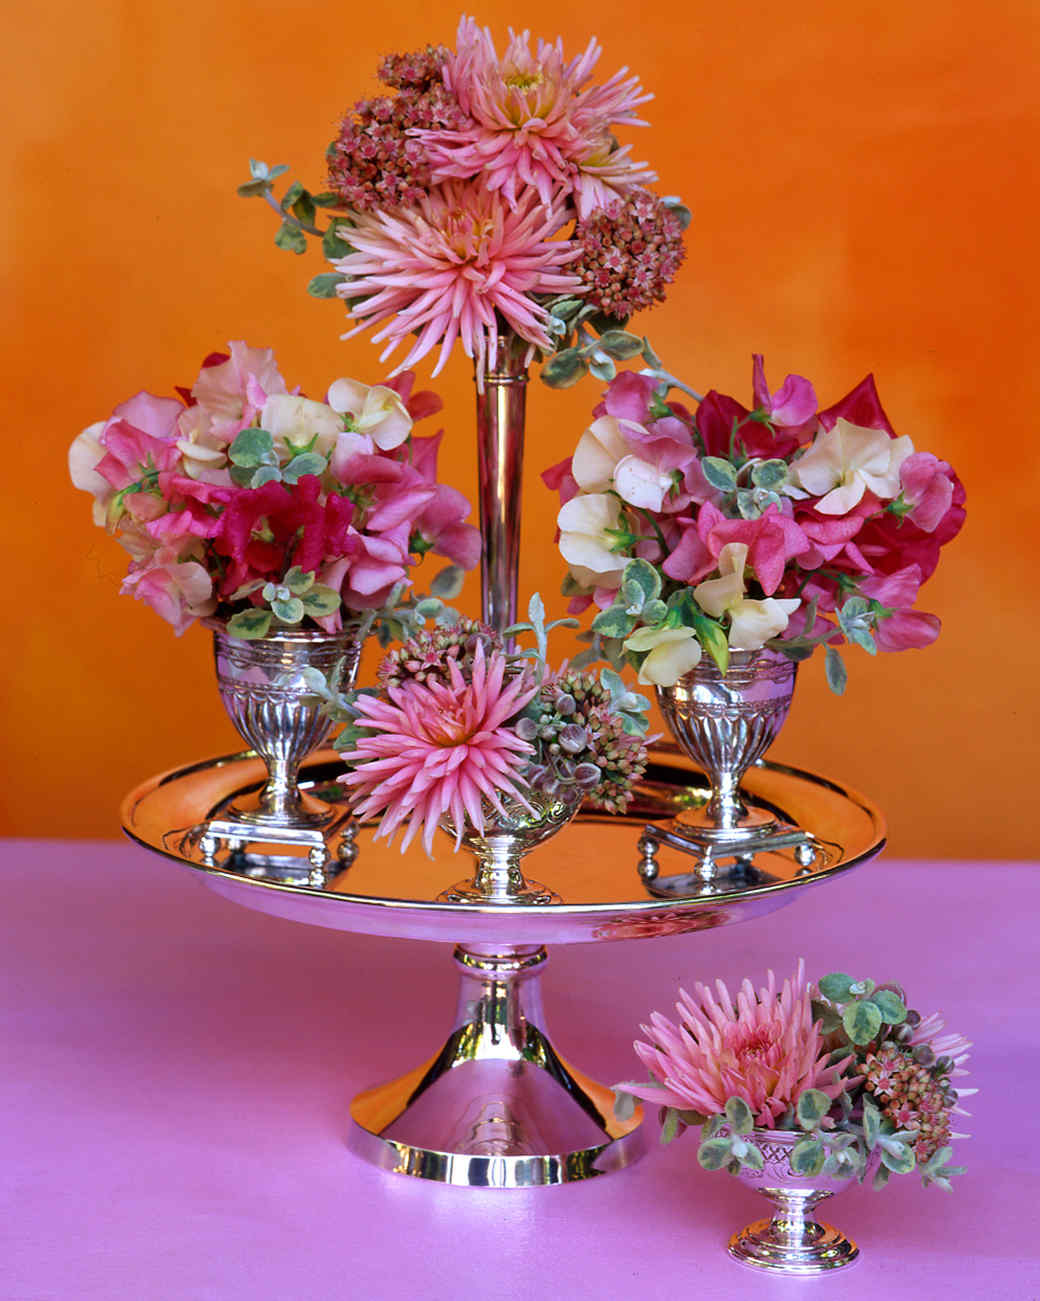 flower-arranging-la103516-pink-orange.jpg